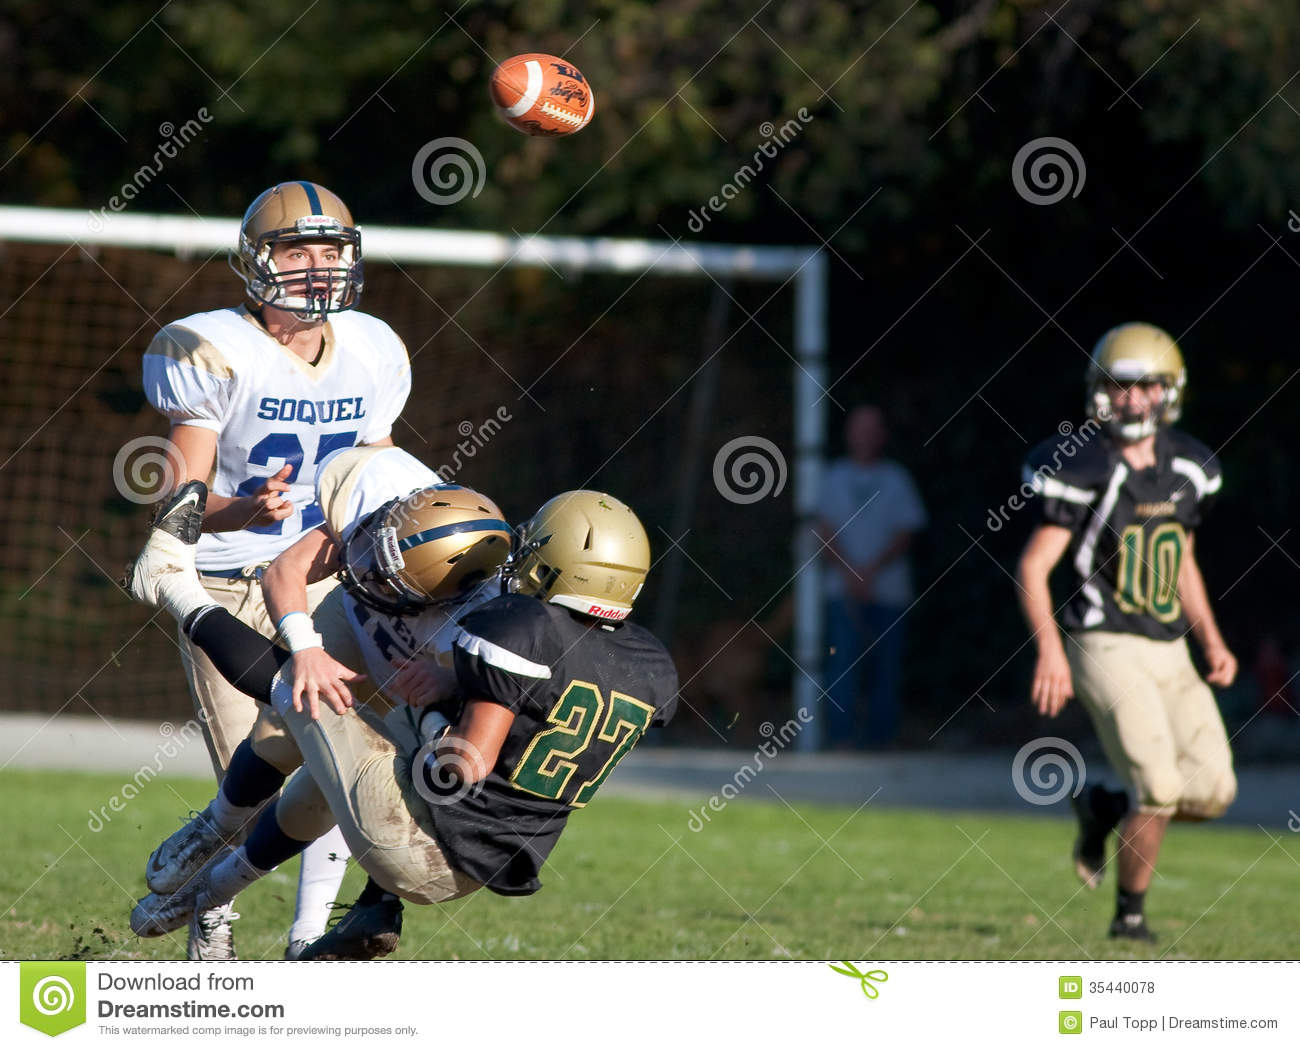 American Football Player Gets Tackled During A Game